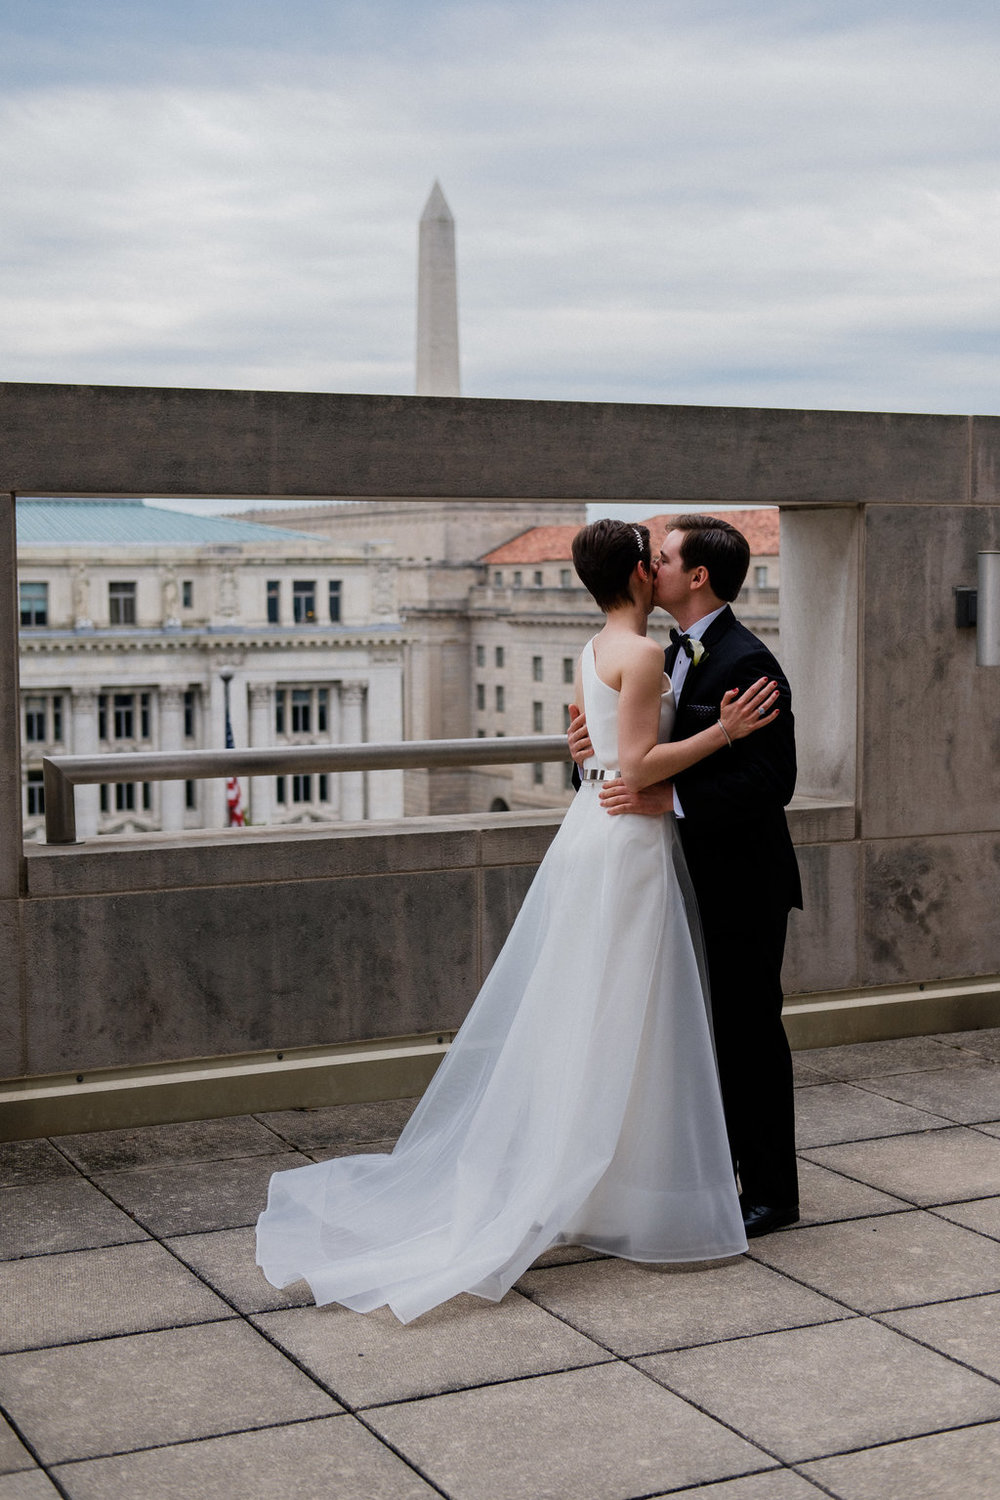 Andrew_Mellon_Washington_DC_Wedding_038.jpg